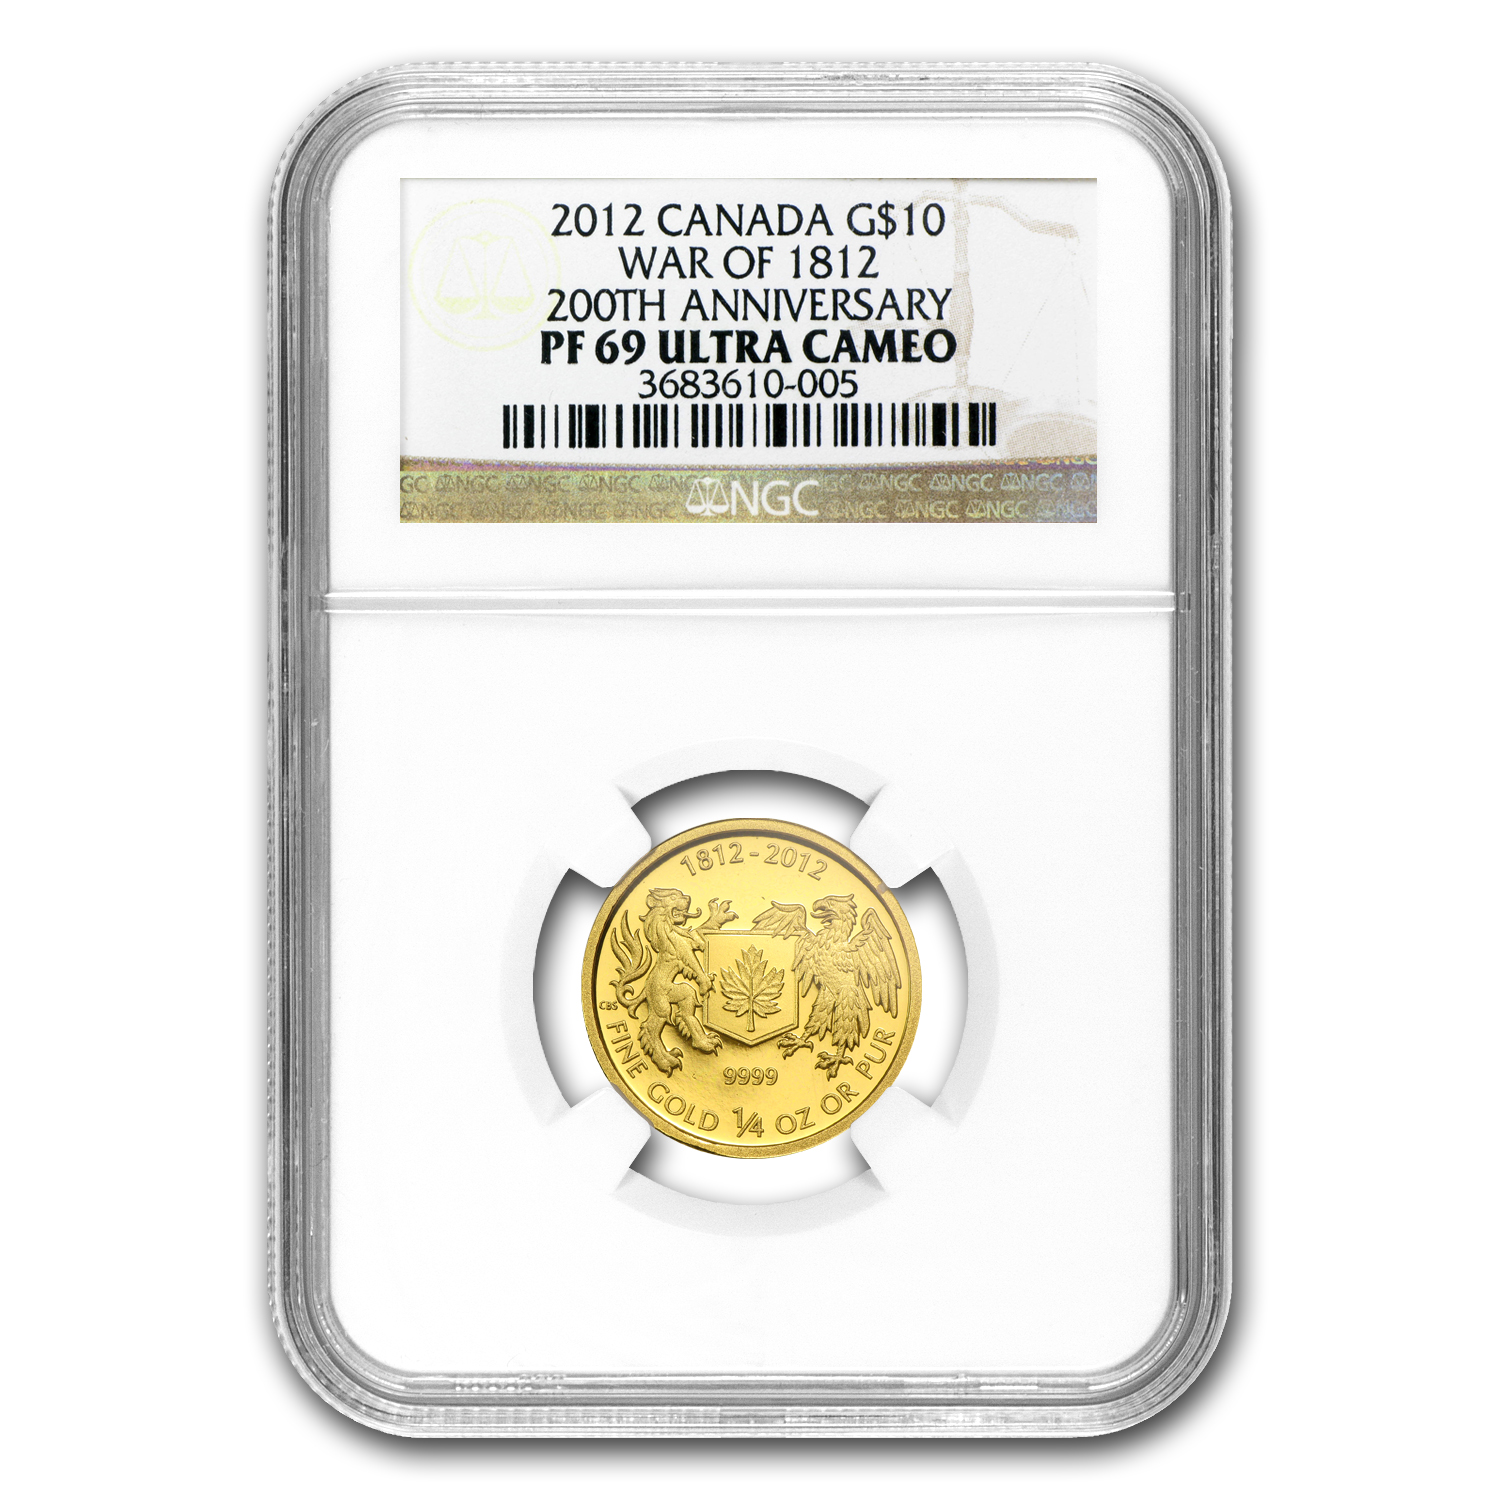 2012 Canada 1/4 oz Gold $10 War of 1812 PF-69 NGC